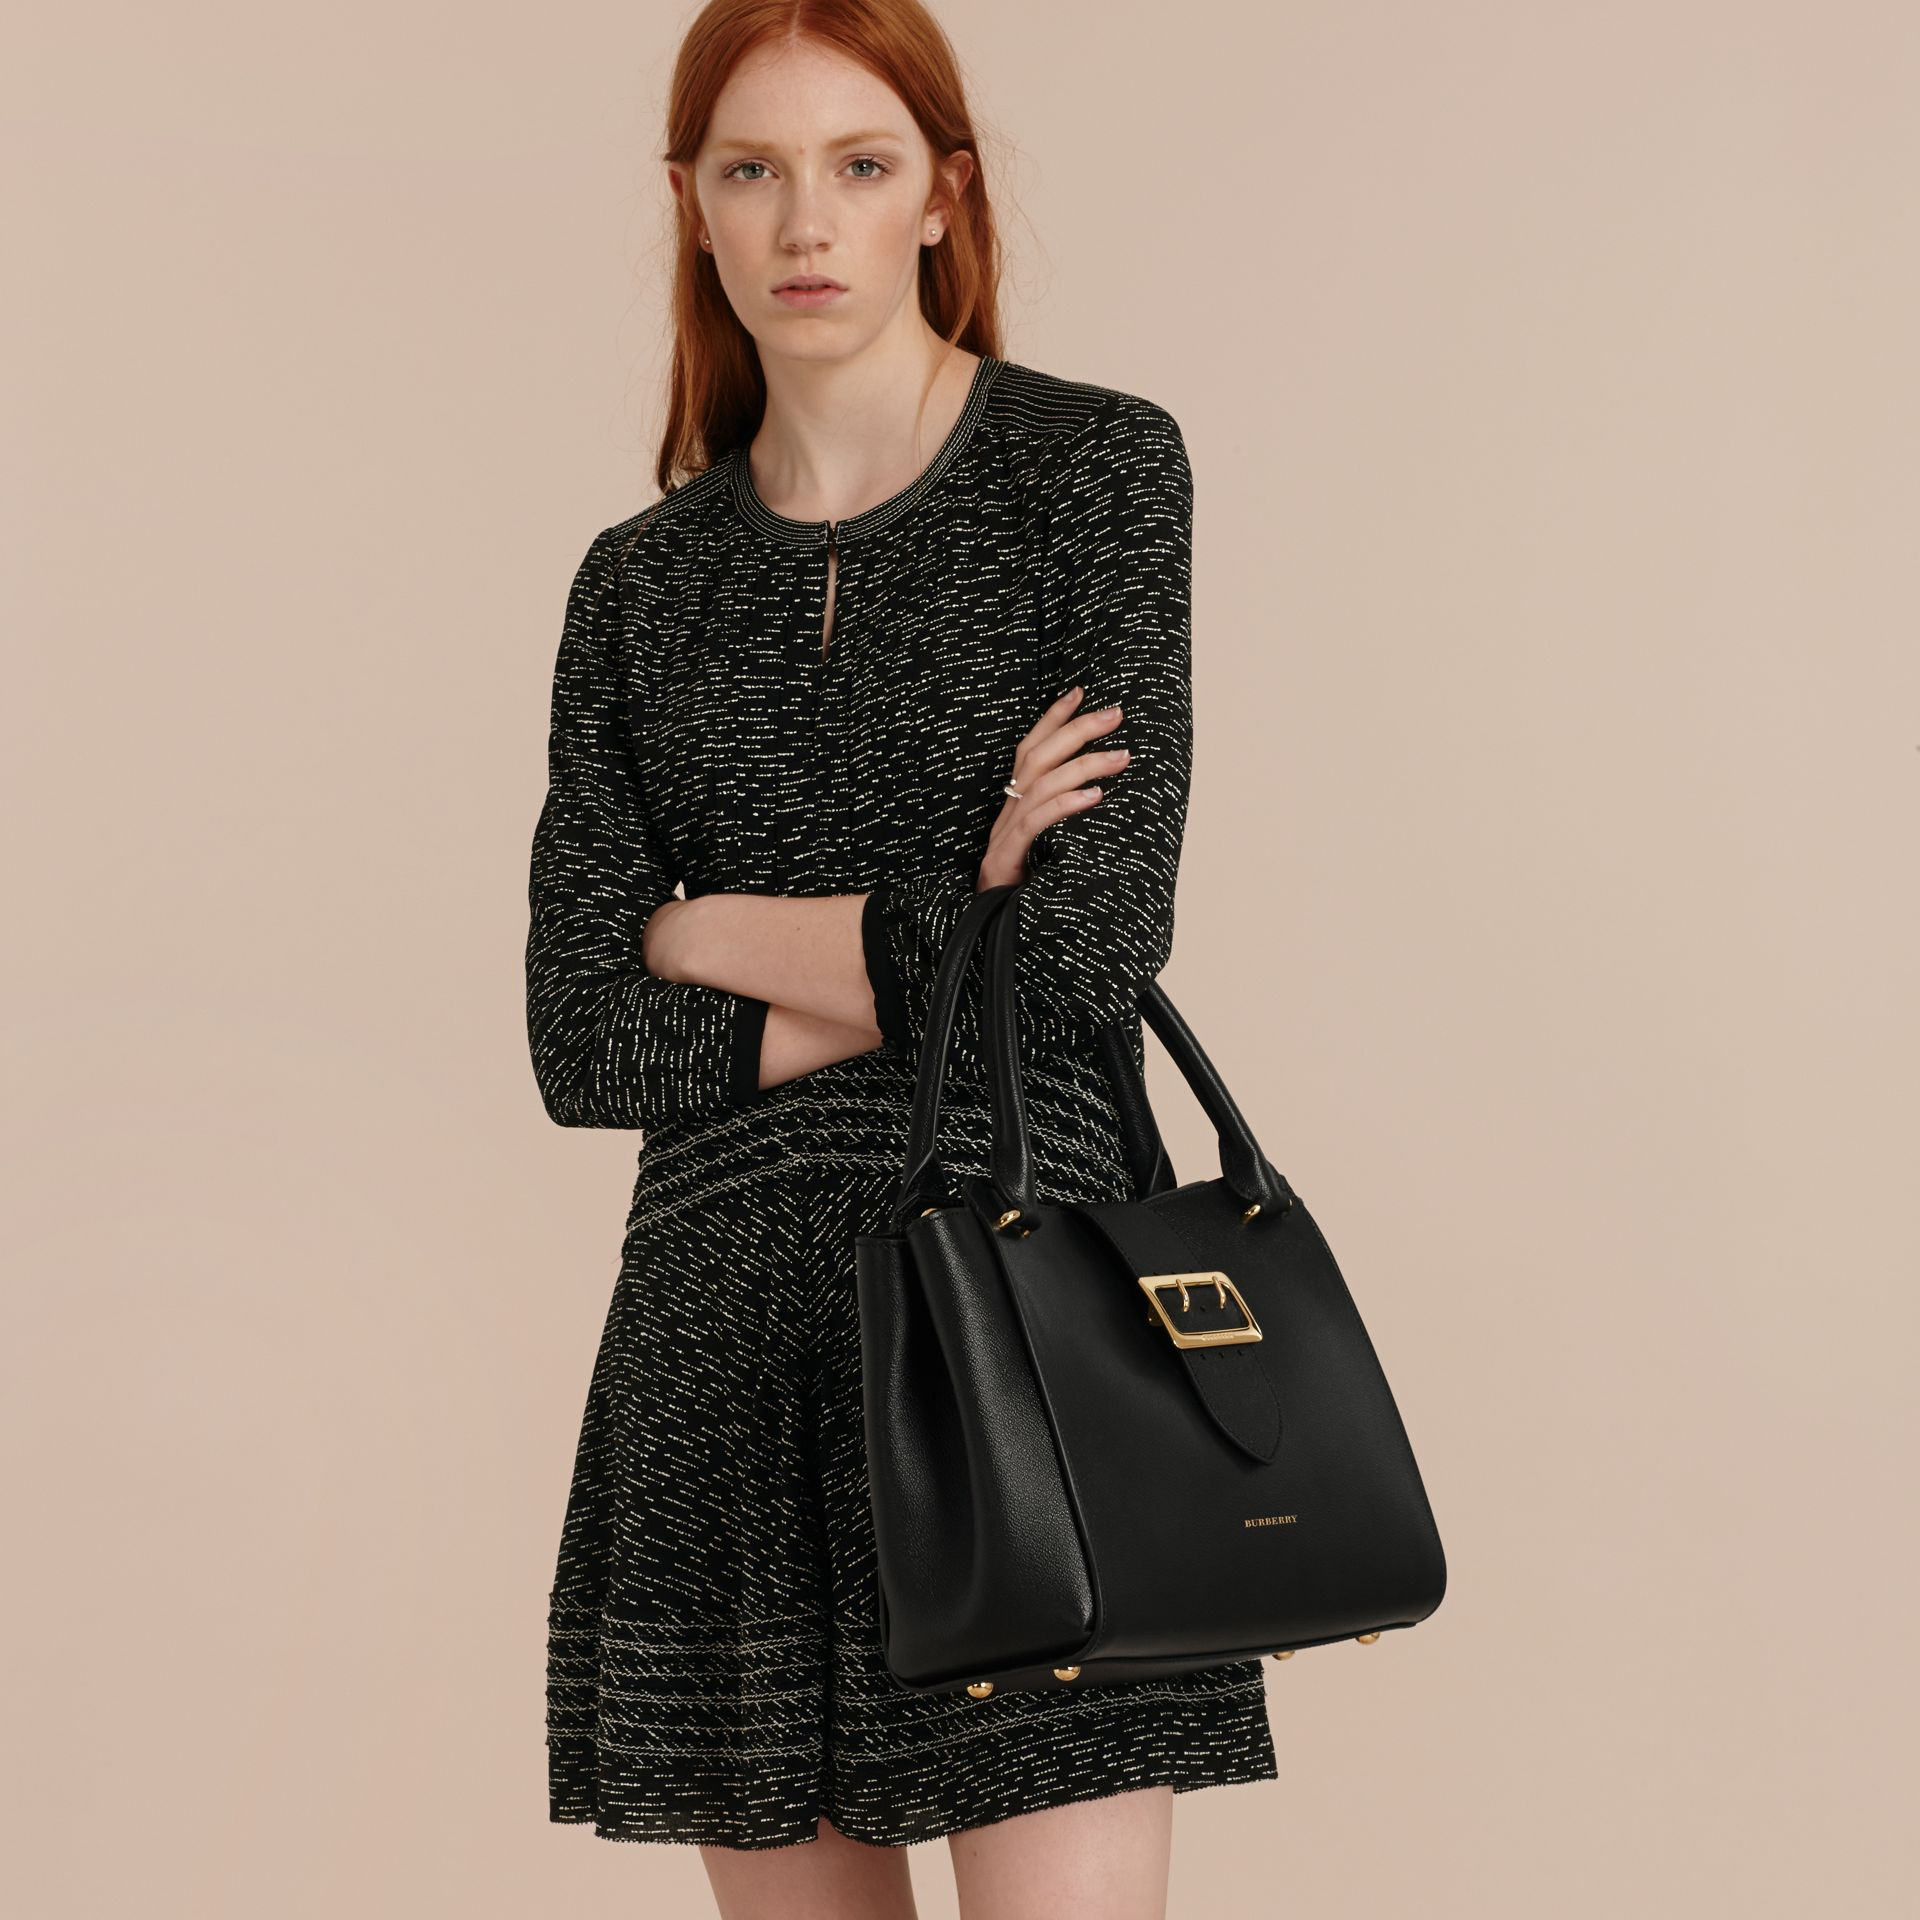 Black The Medium Buckle Tote in Grainy Leather Black - gallery image 3